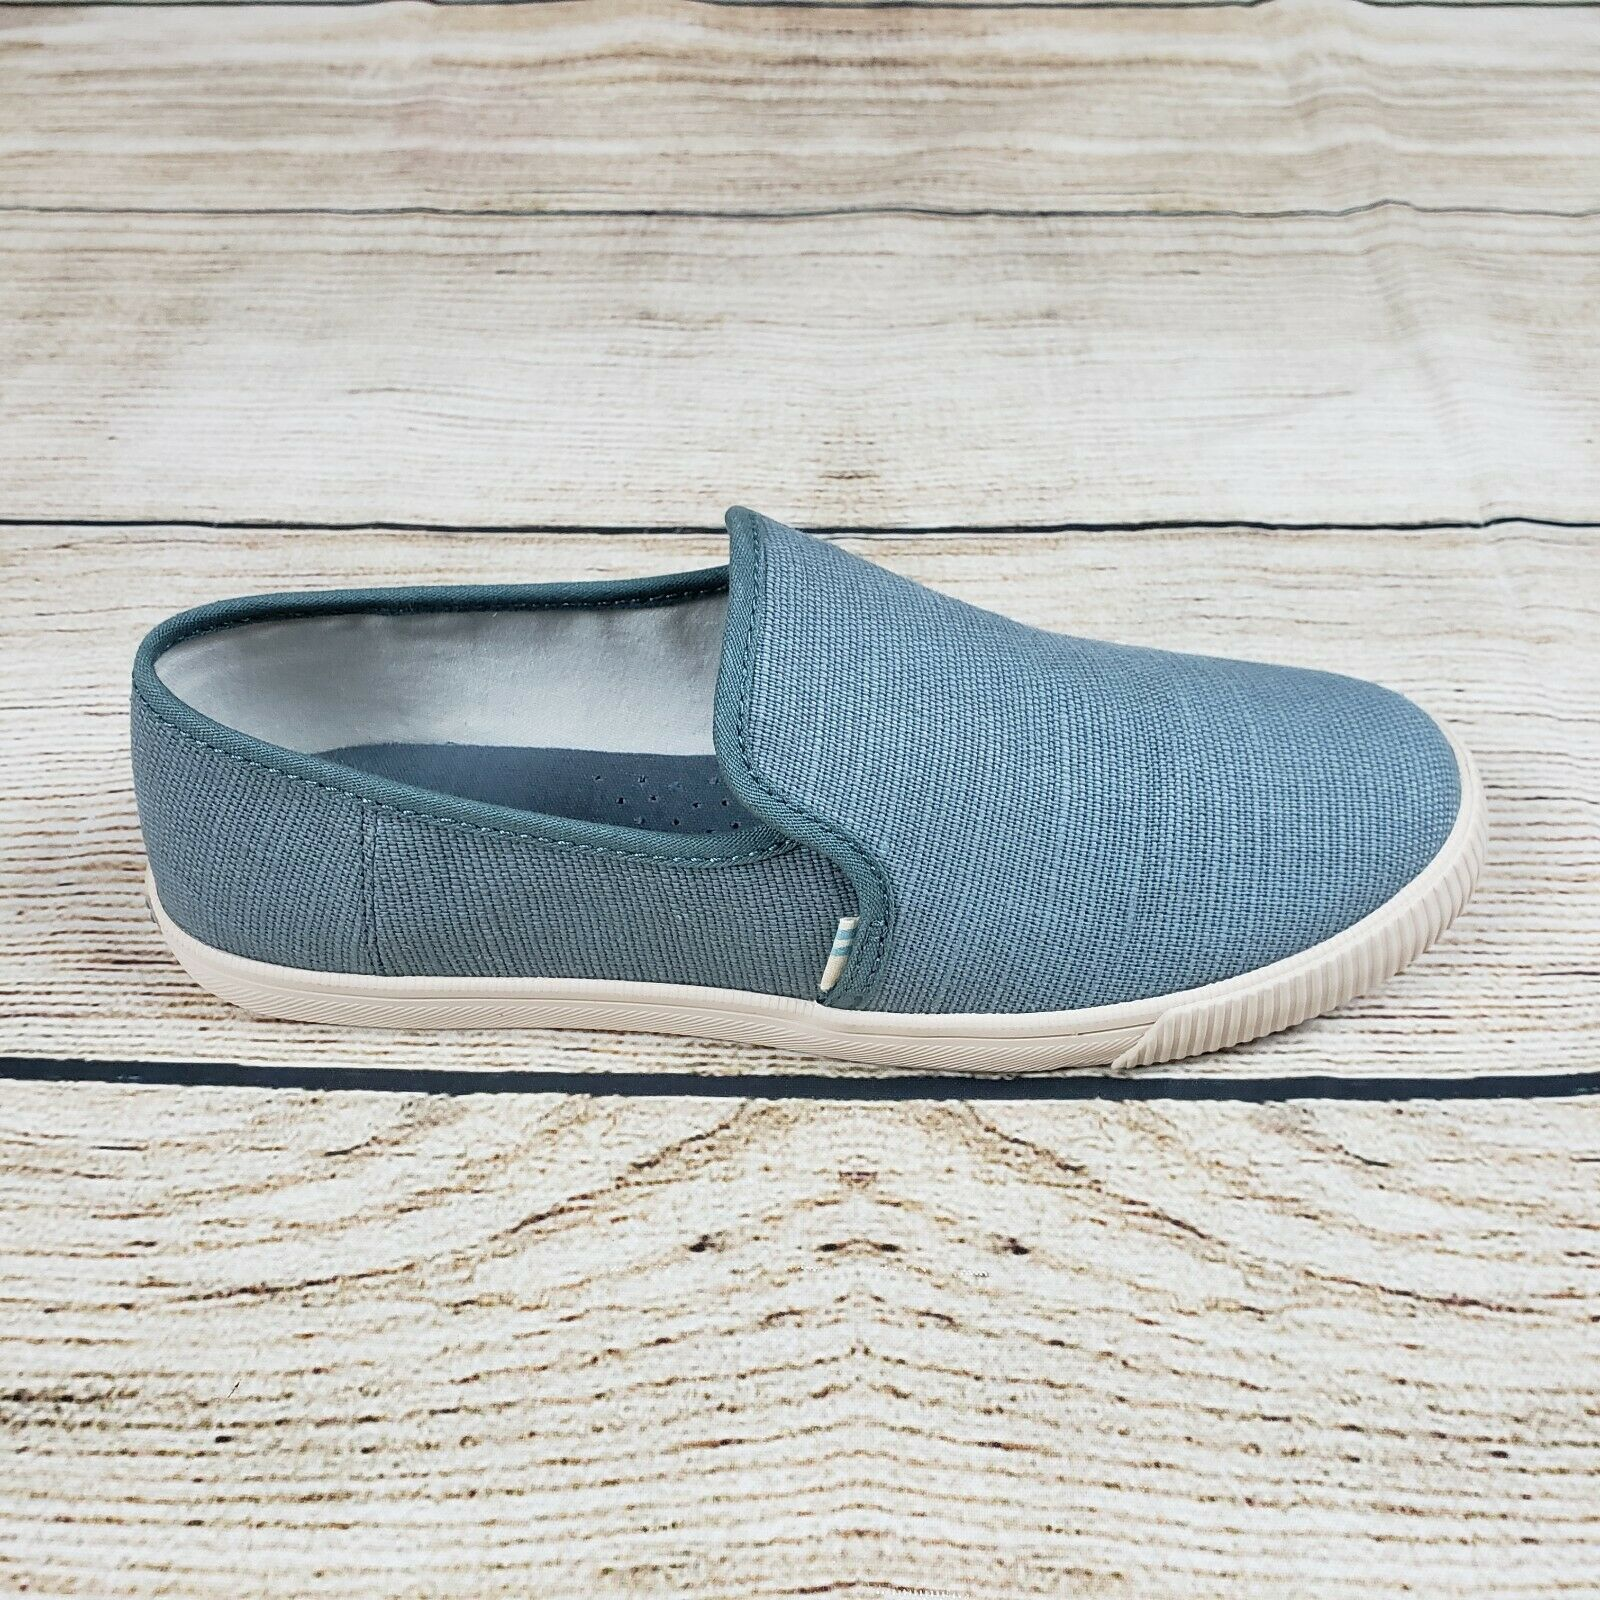 Toms Clemente Casual Comfort Slip on